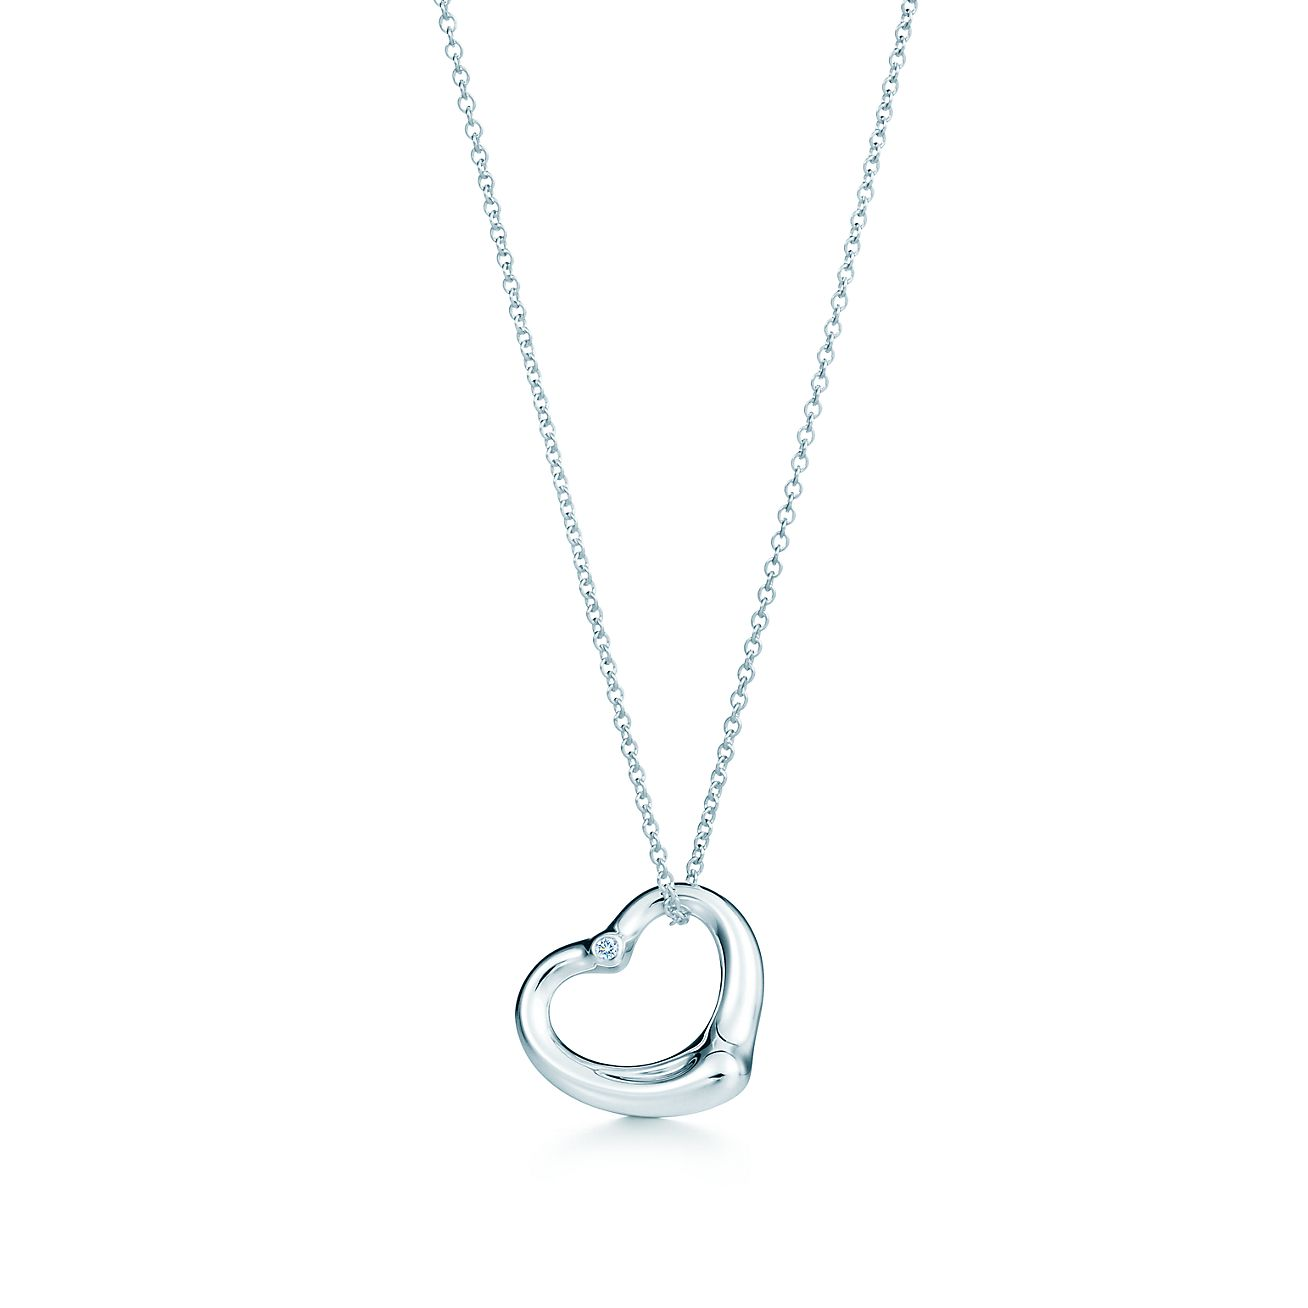 Tiffany Hearts pendant with diamonds in platinum Tiffany & Co.